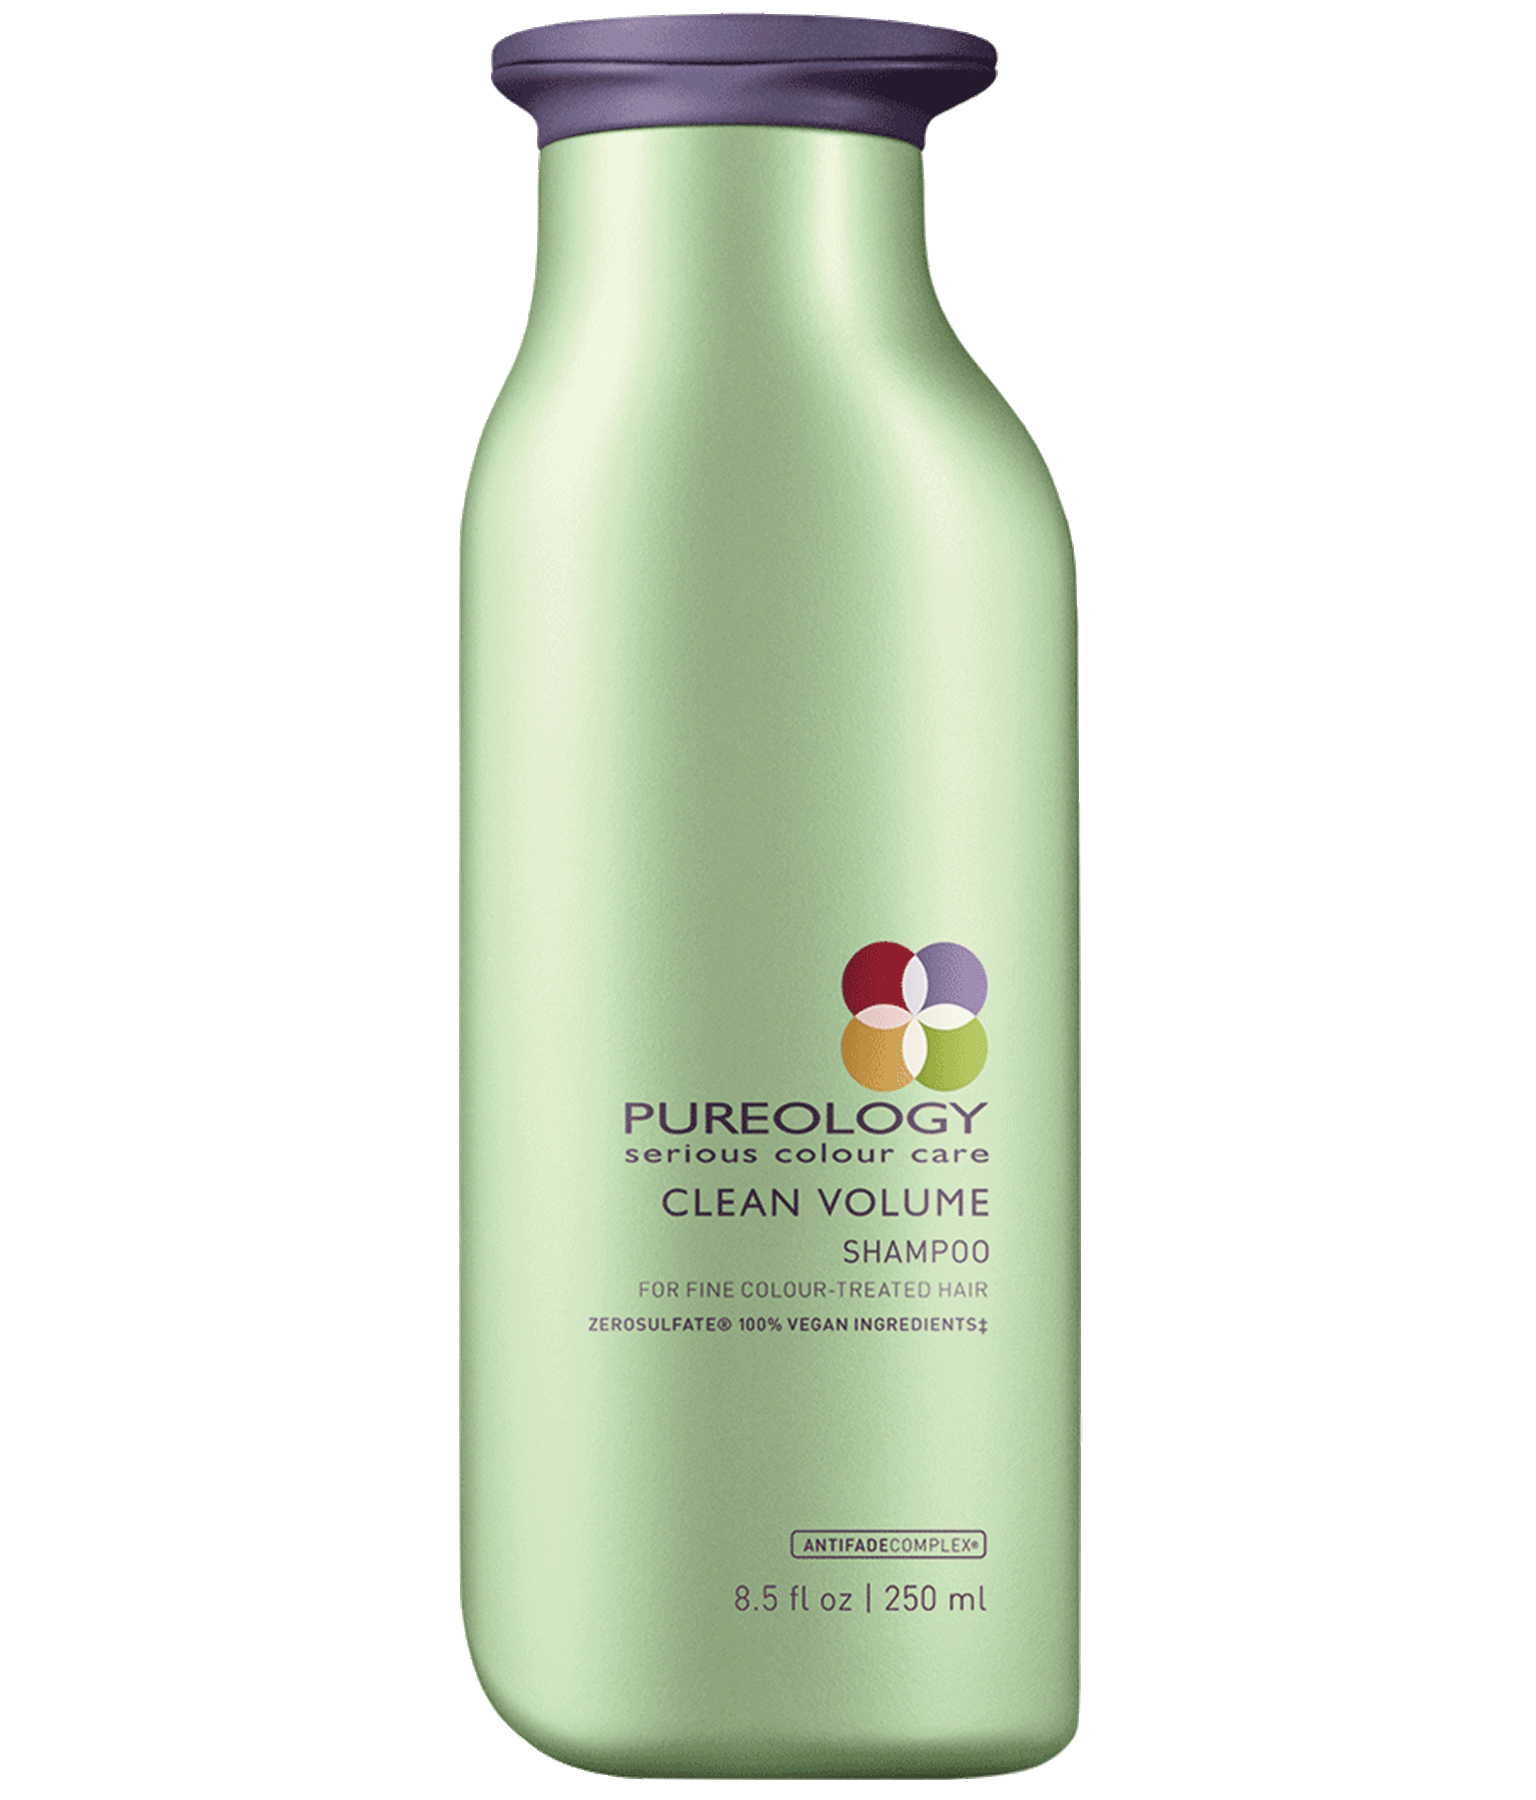 Clean Volume Volumizing Shampoo For Colored Hair - Pureology